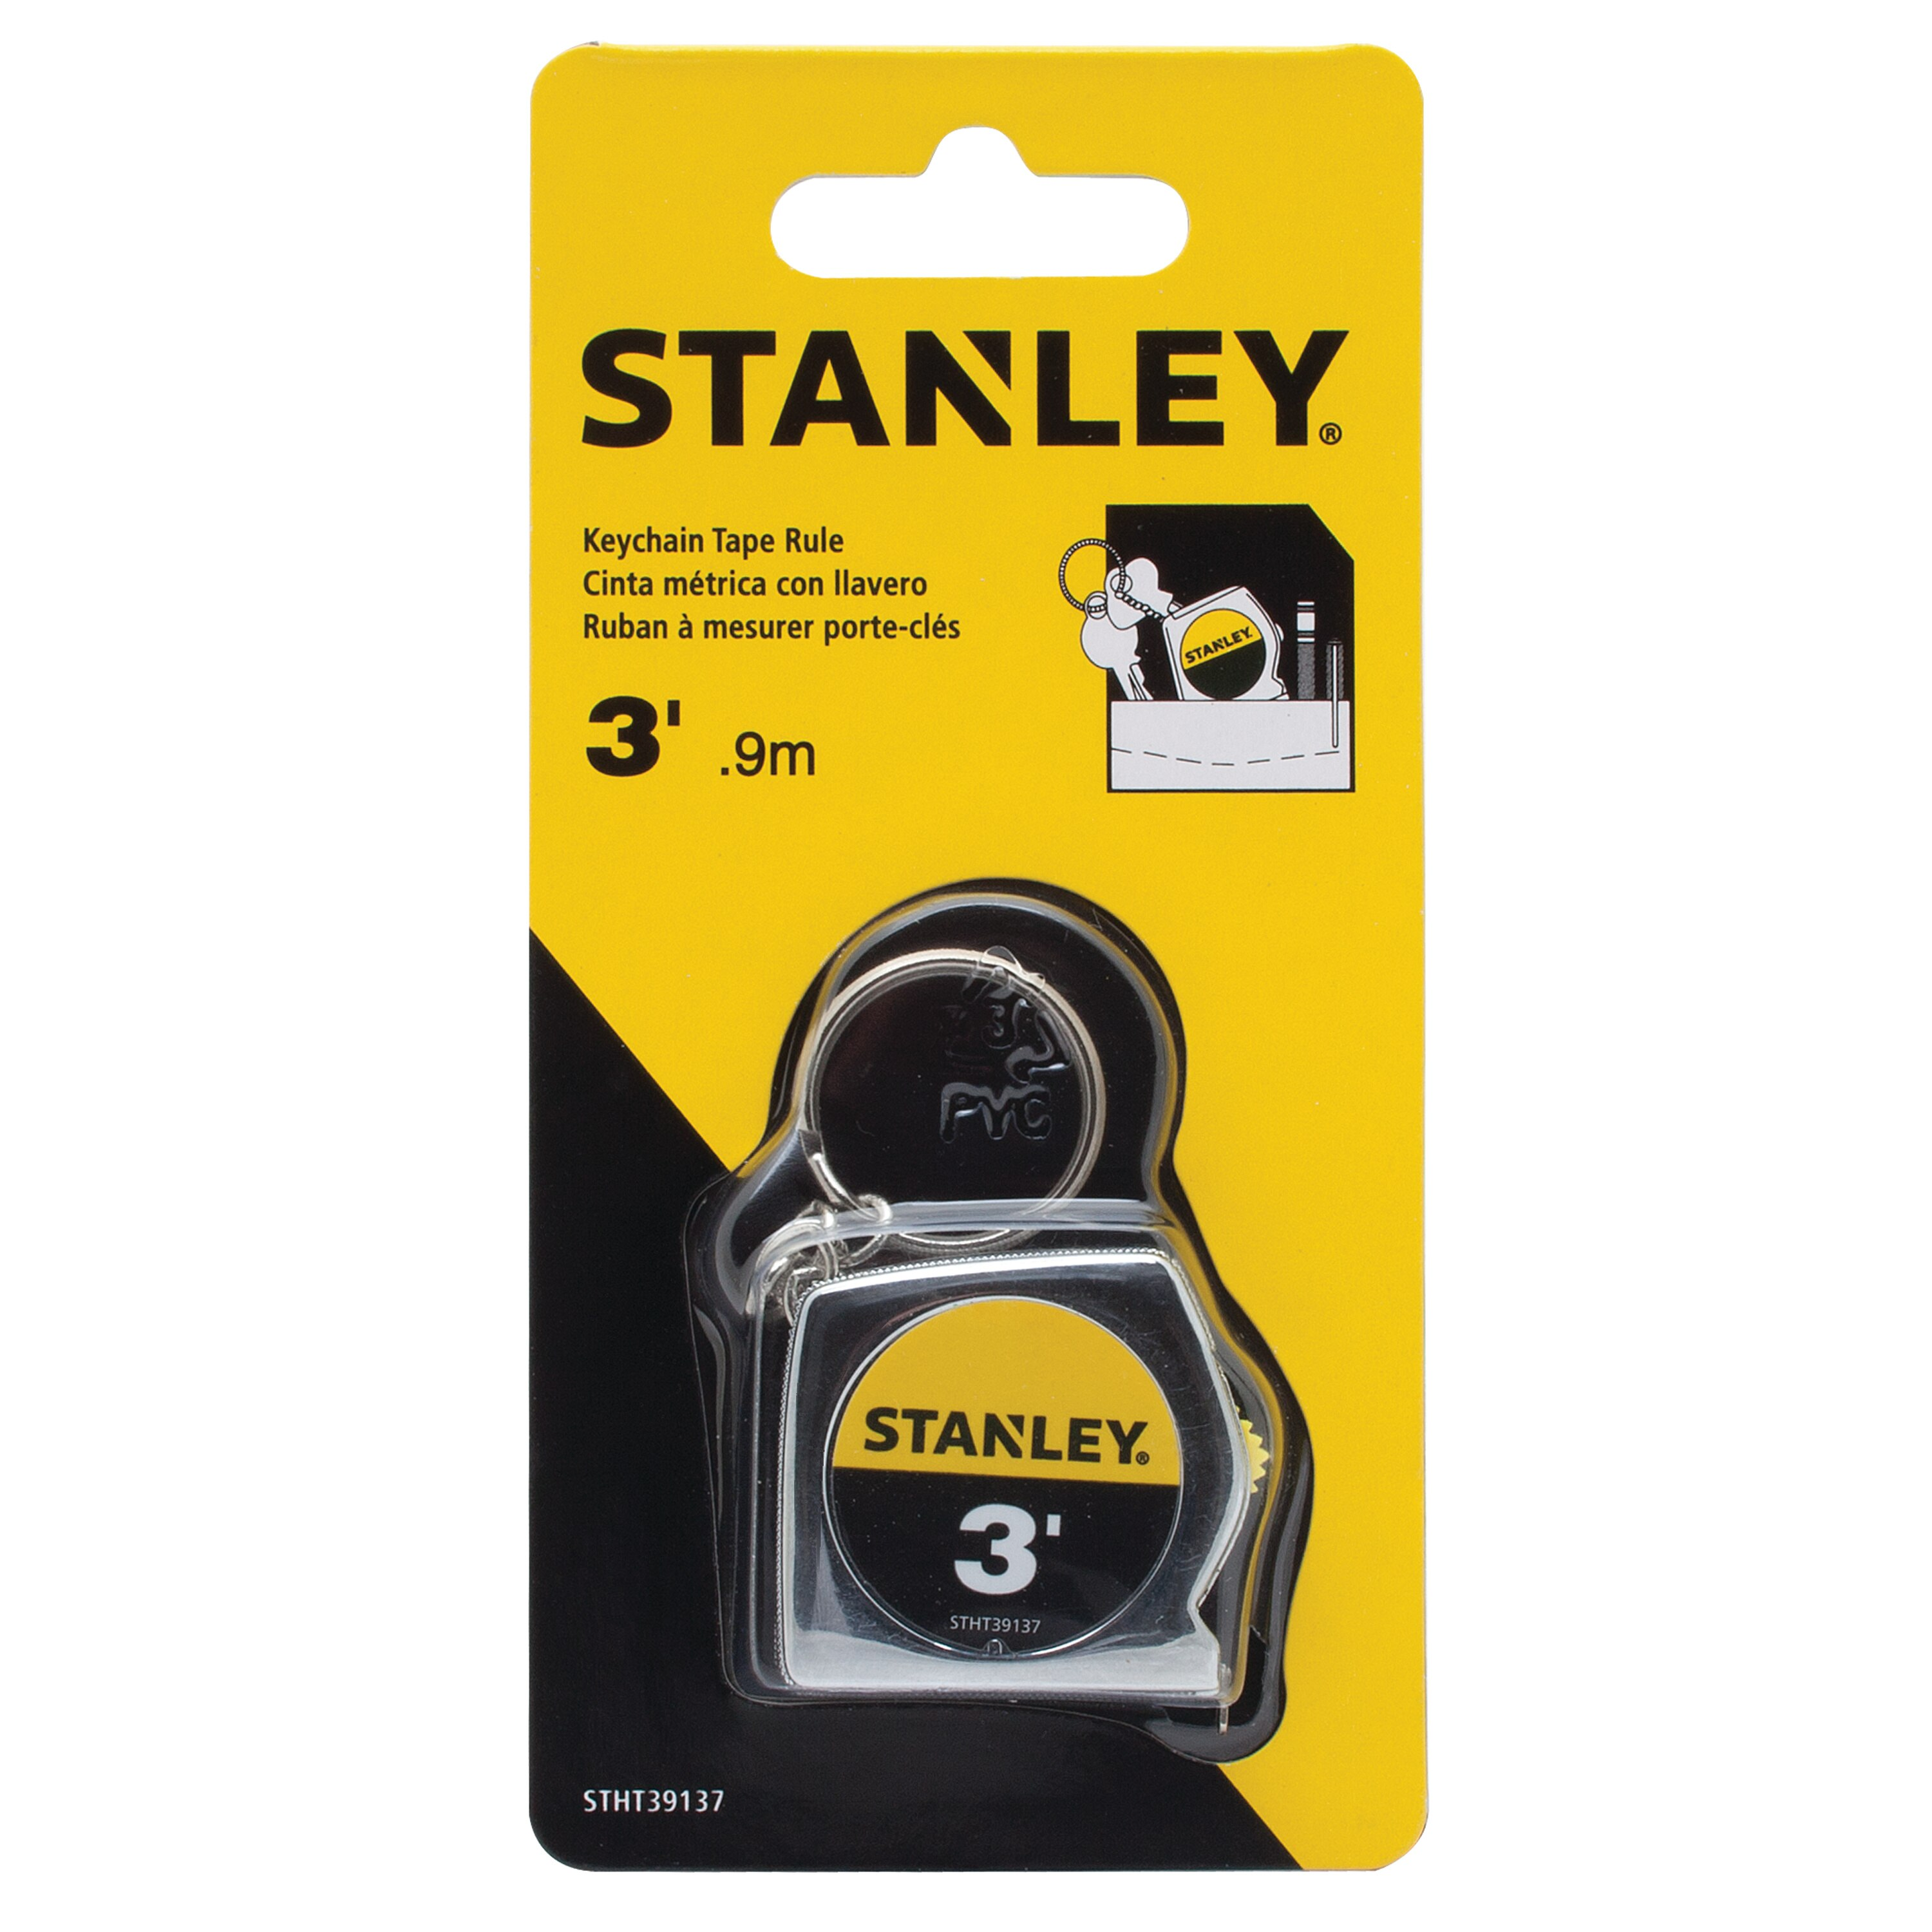 Stanley Tools - 3 ft Keychain Tape Measure - STHT39137